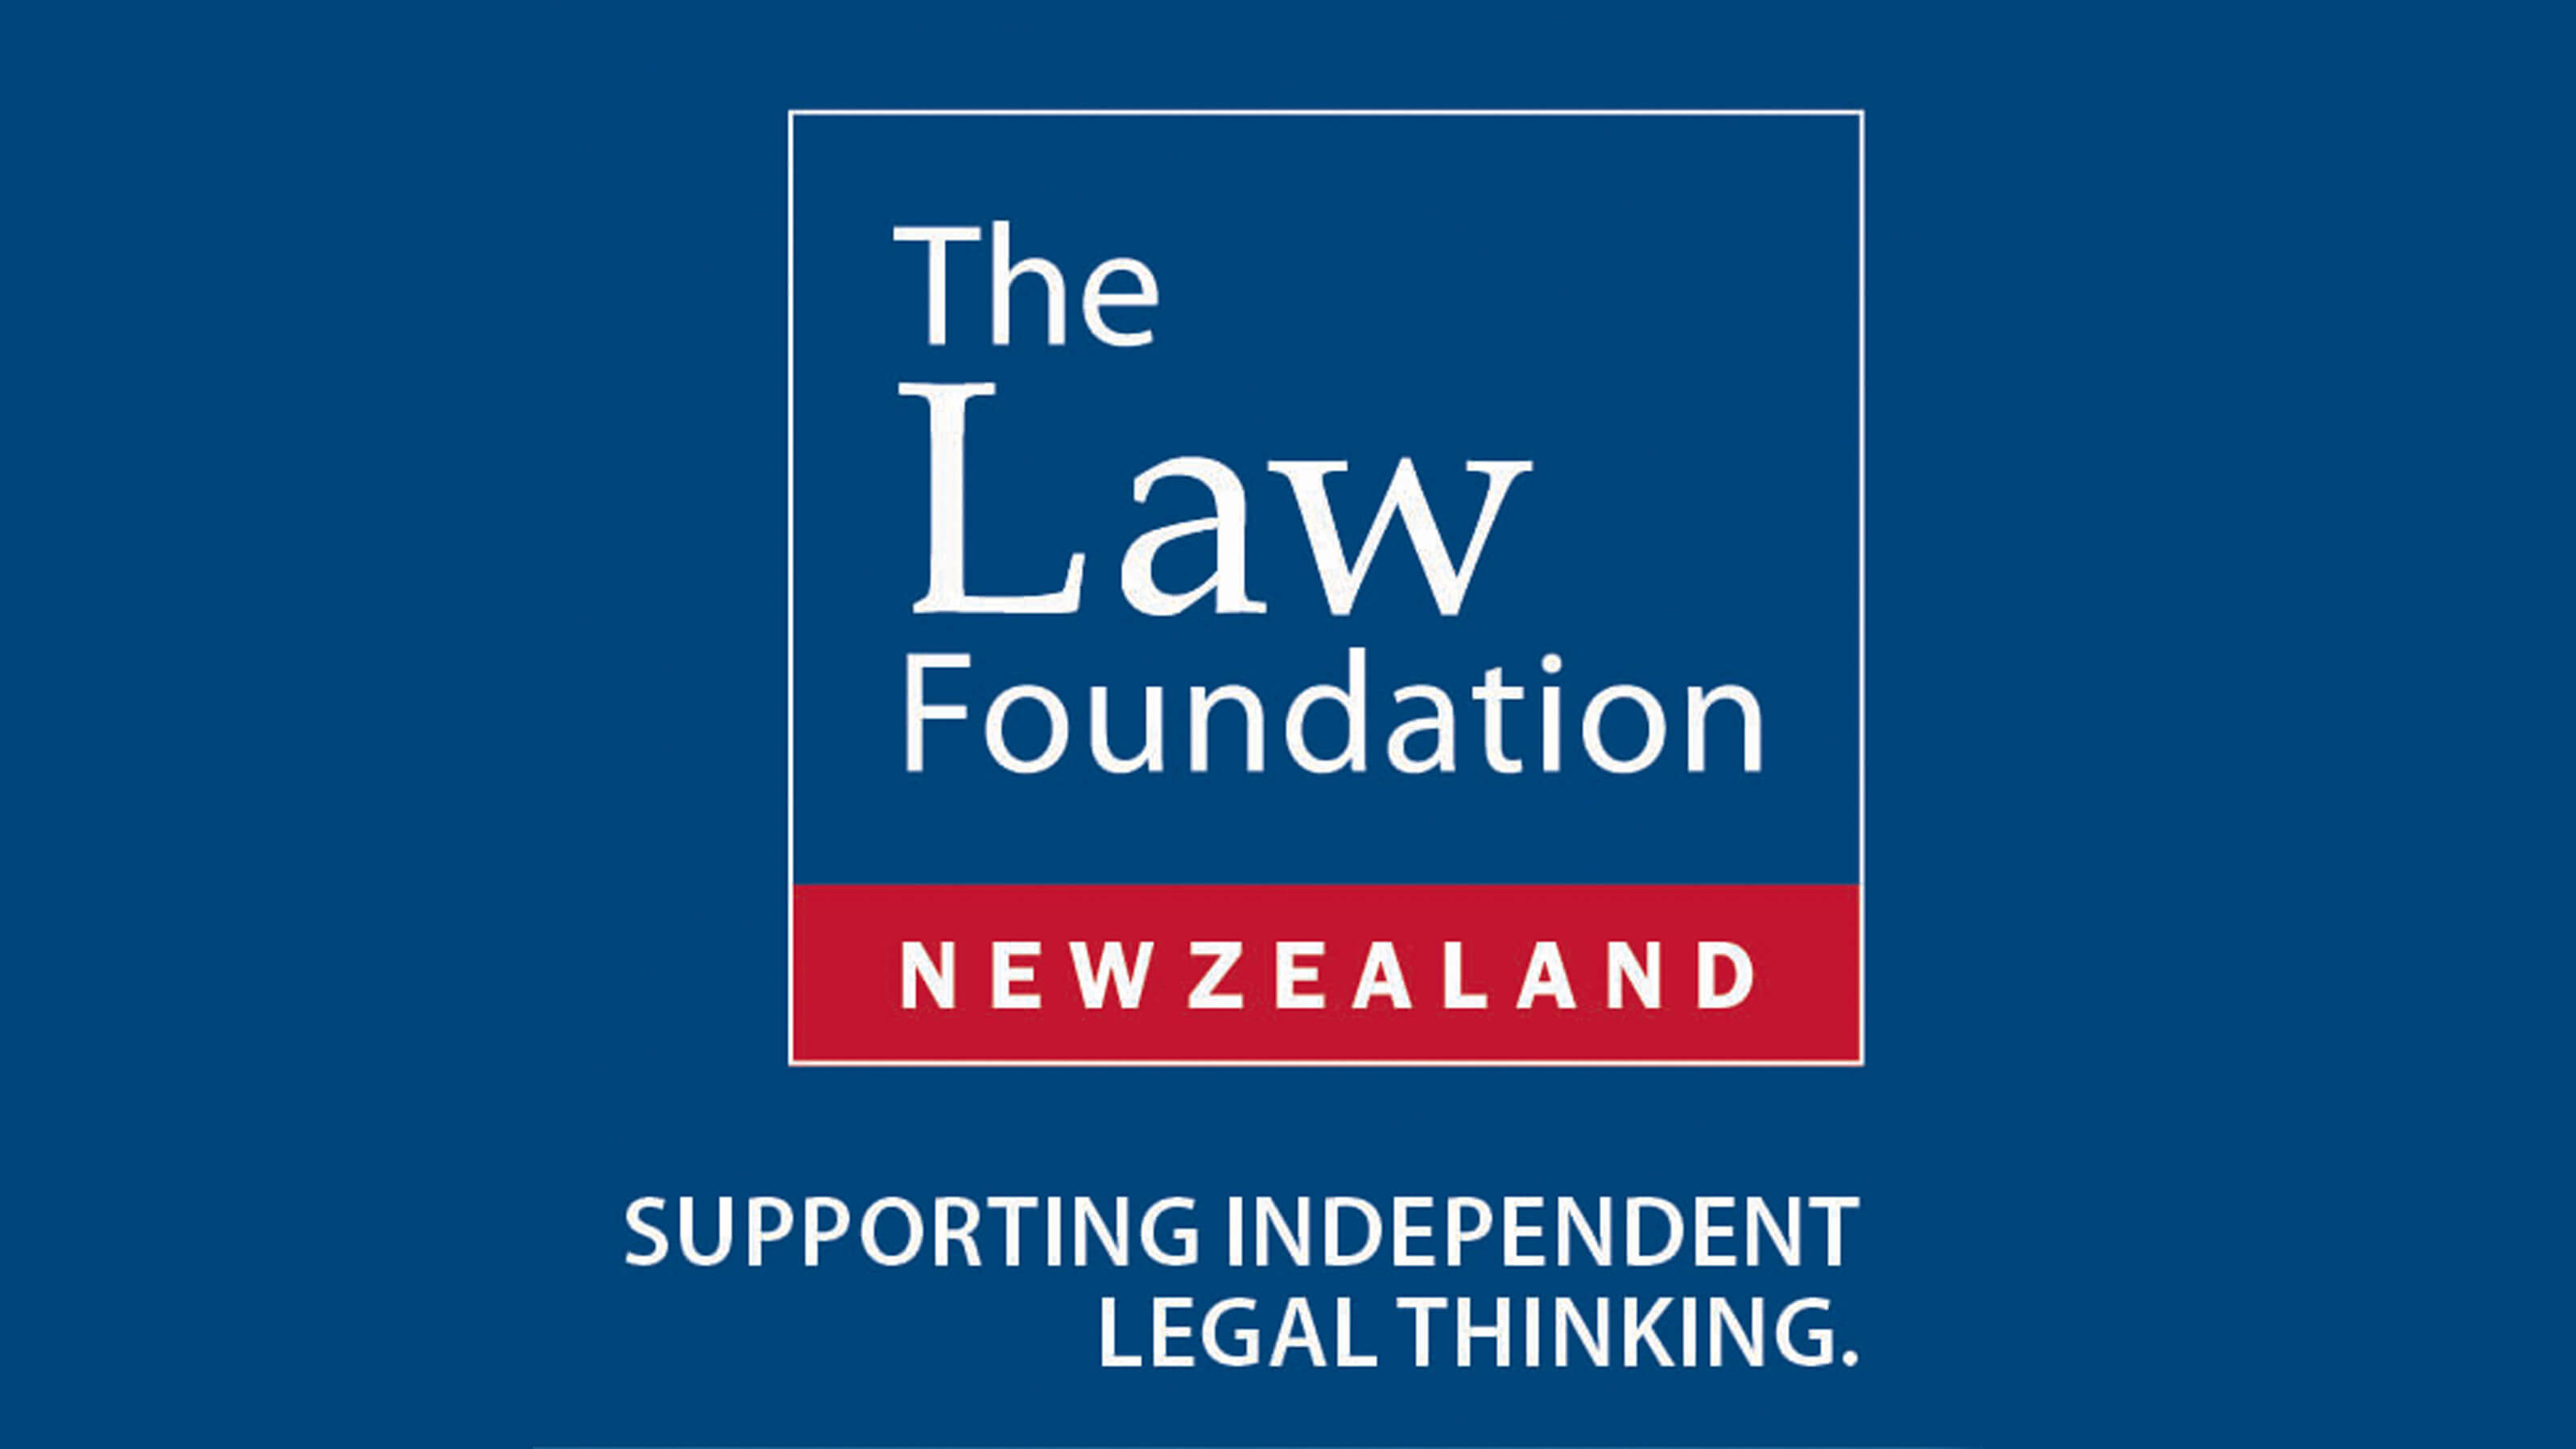 New Zealand Law Foundation